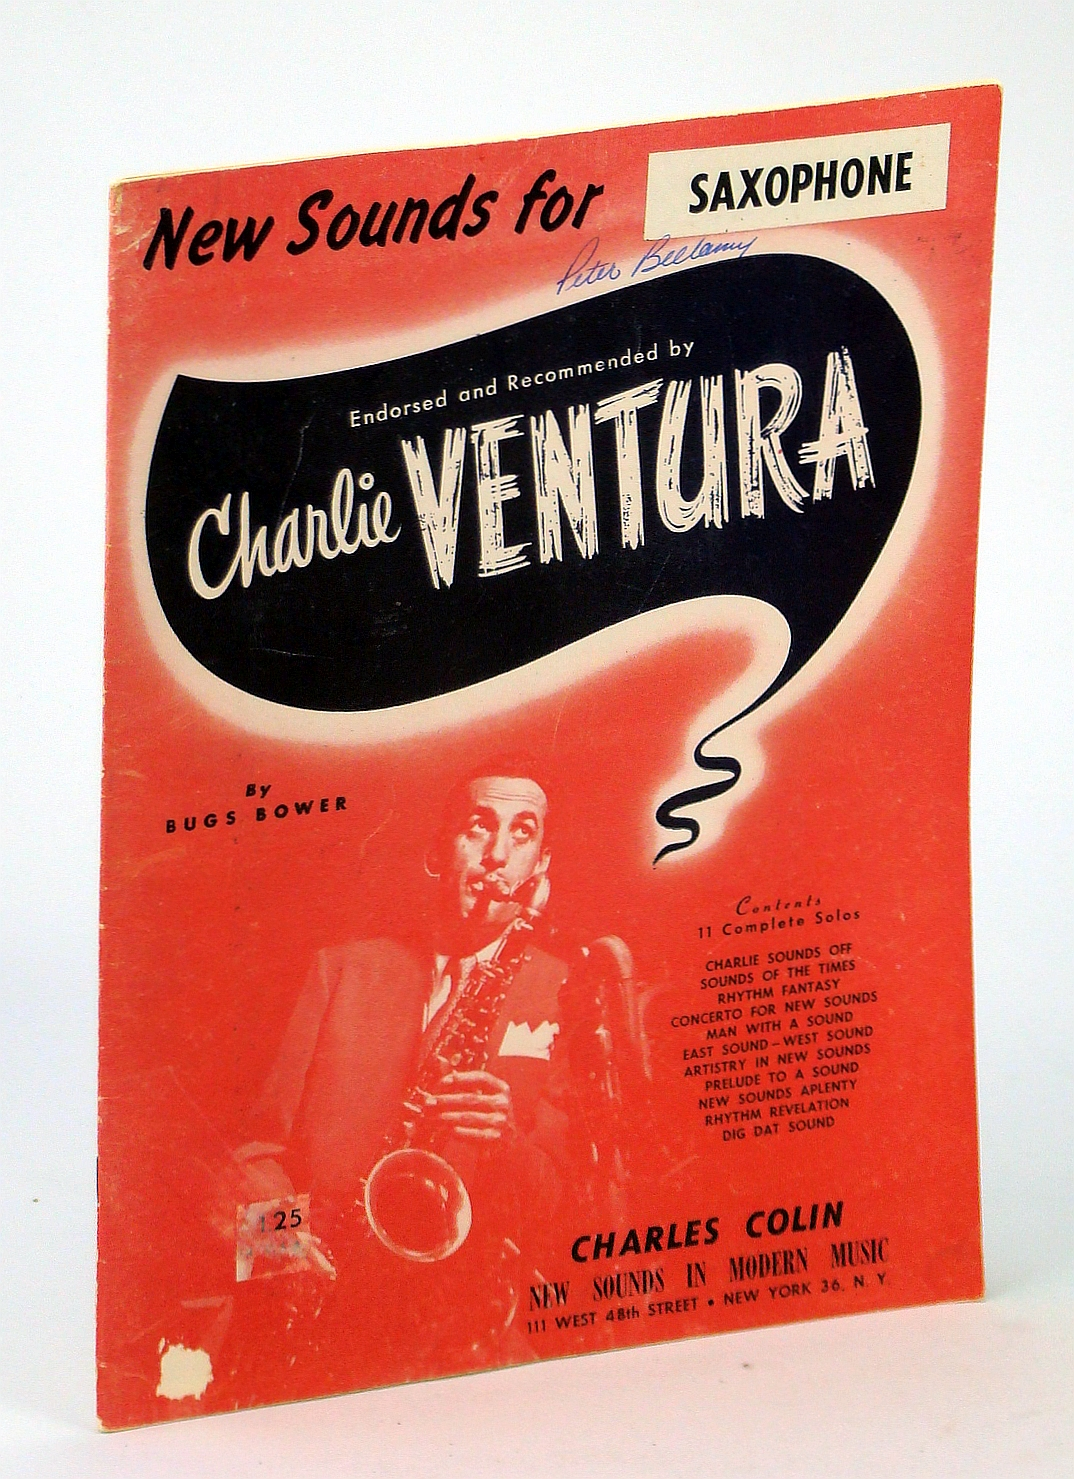 Image for New Sounds for Saxophone - Endorsed and Recommended By Charlie Ventura: Songbook with Sheet Music and Chords